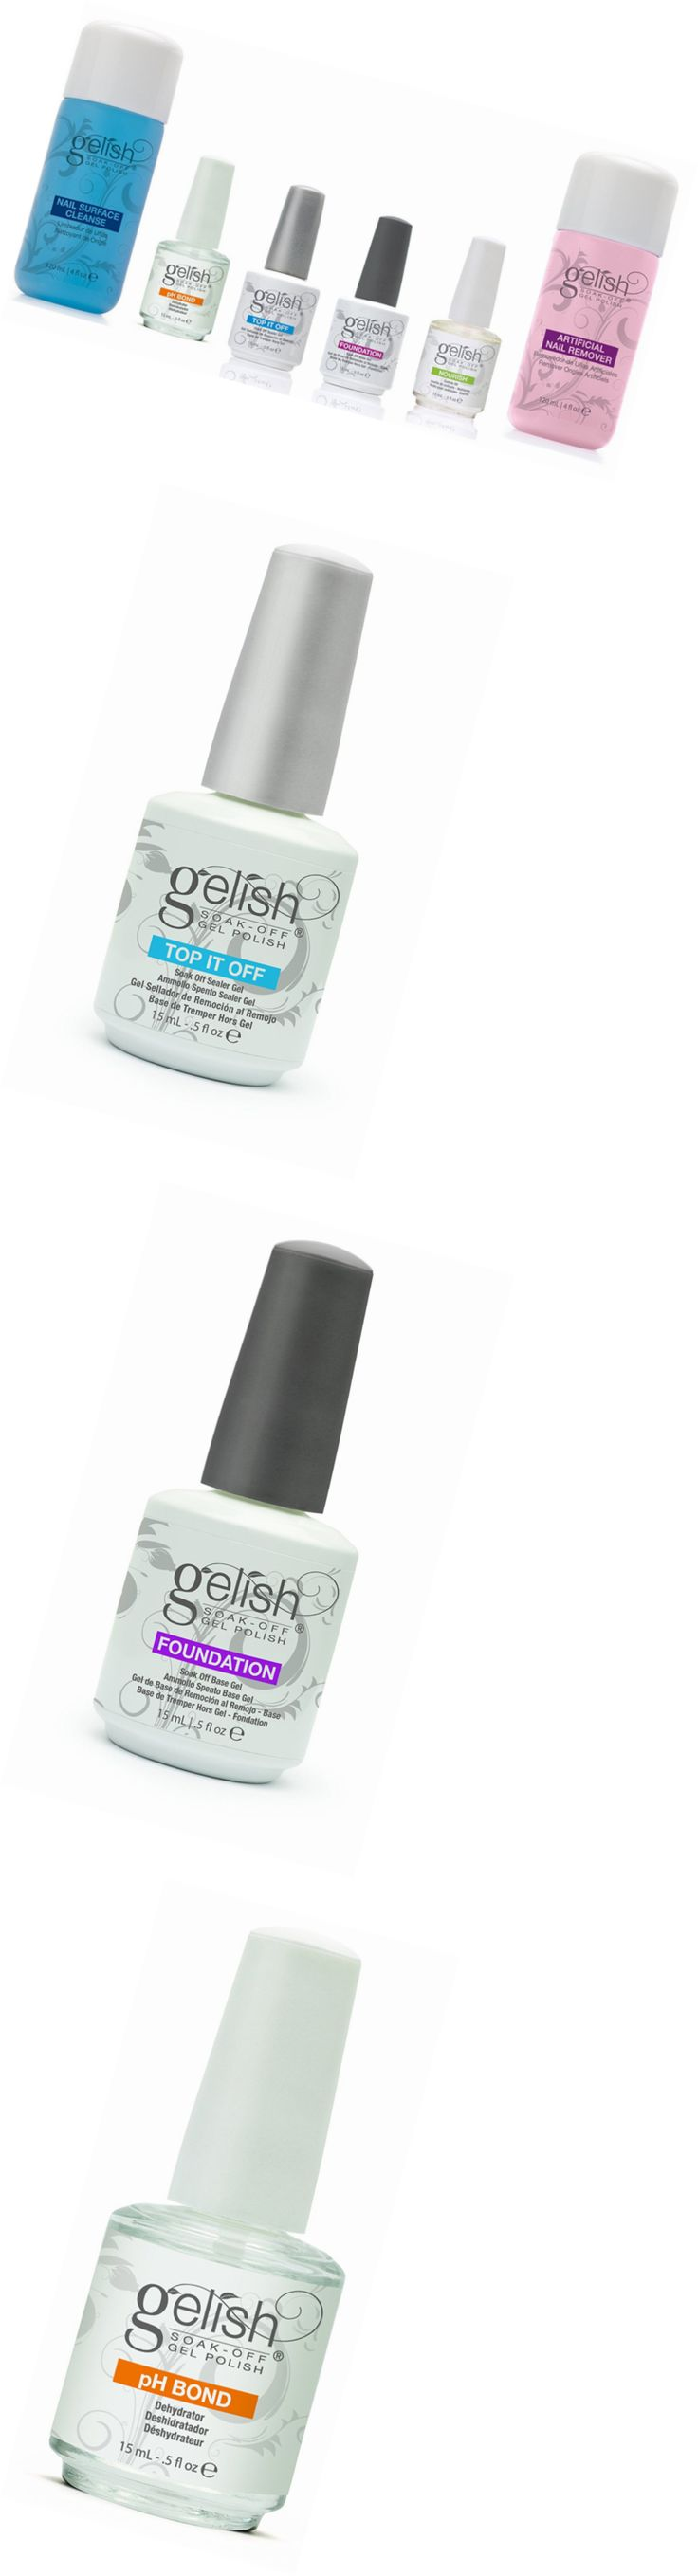 Nail Polish Remover: New Gelish Full Size Gel Nail Polish Basix Care Kit (15Ml) + Remover And Cleanser -> BUY IT NOW ONLY: $47.28 on eBay!